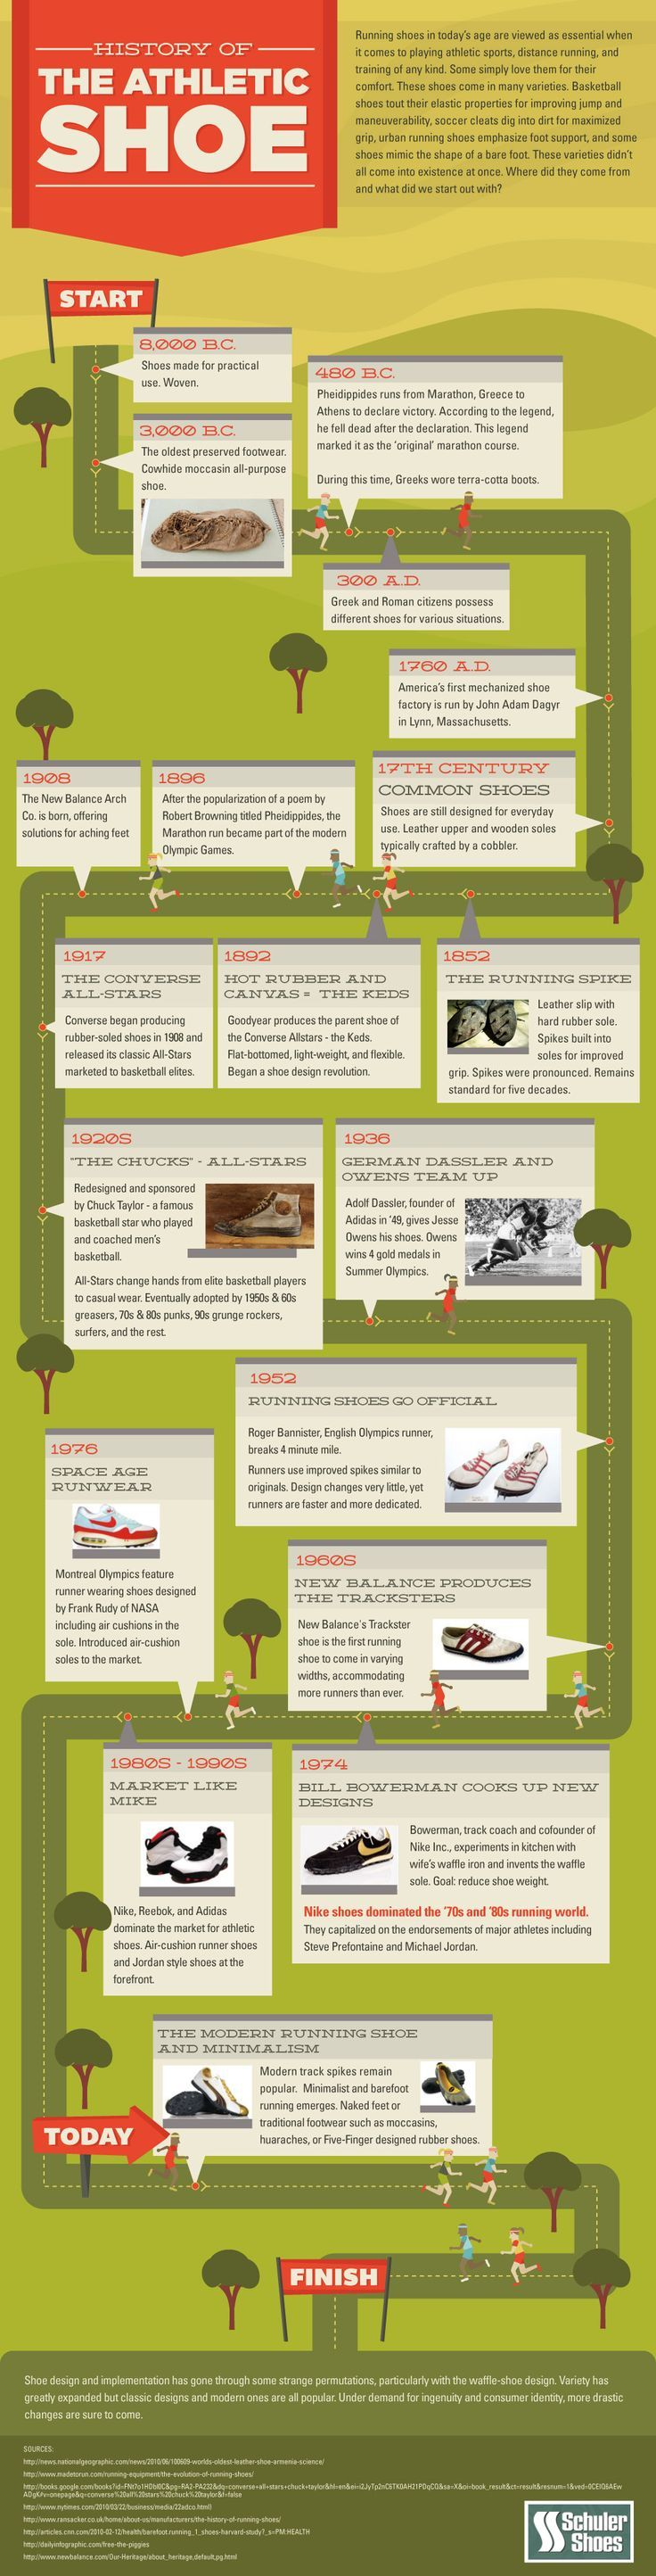 Athletic shoes have changed a lot over the last 100 years. Follow the path in the following infographic to read about some major highlights of the evolution of the athletic shoe and about comfort shoes for men and women history (click through for expanded graphic).